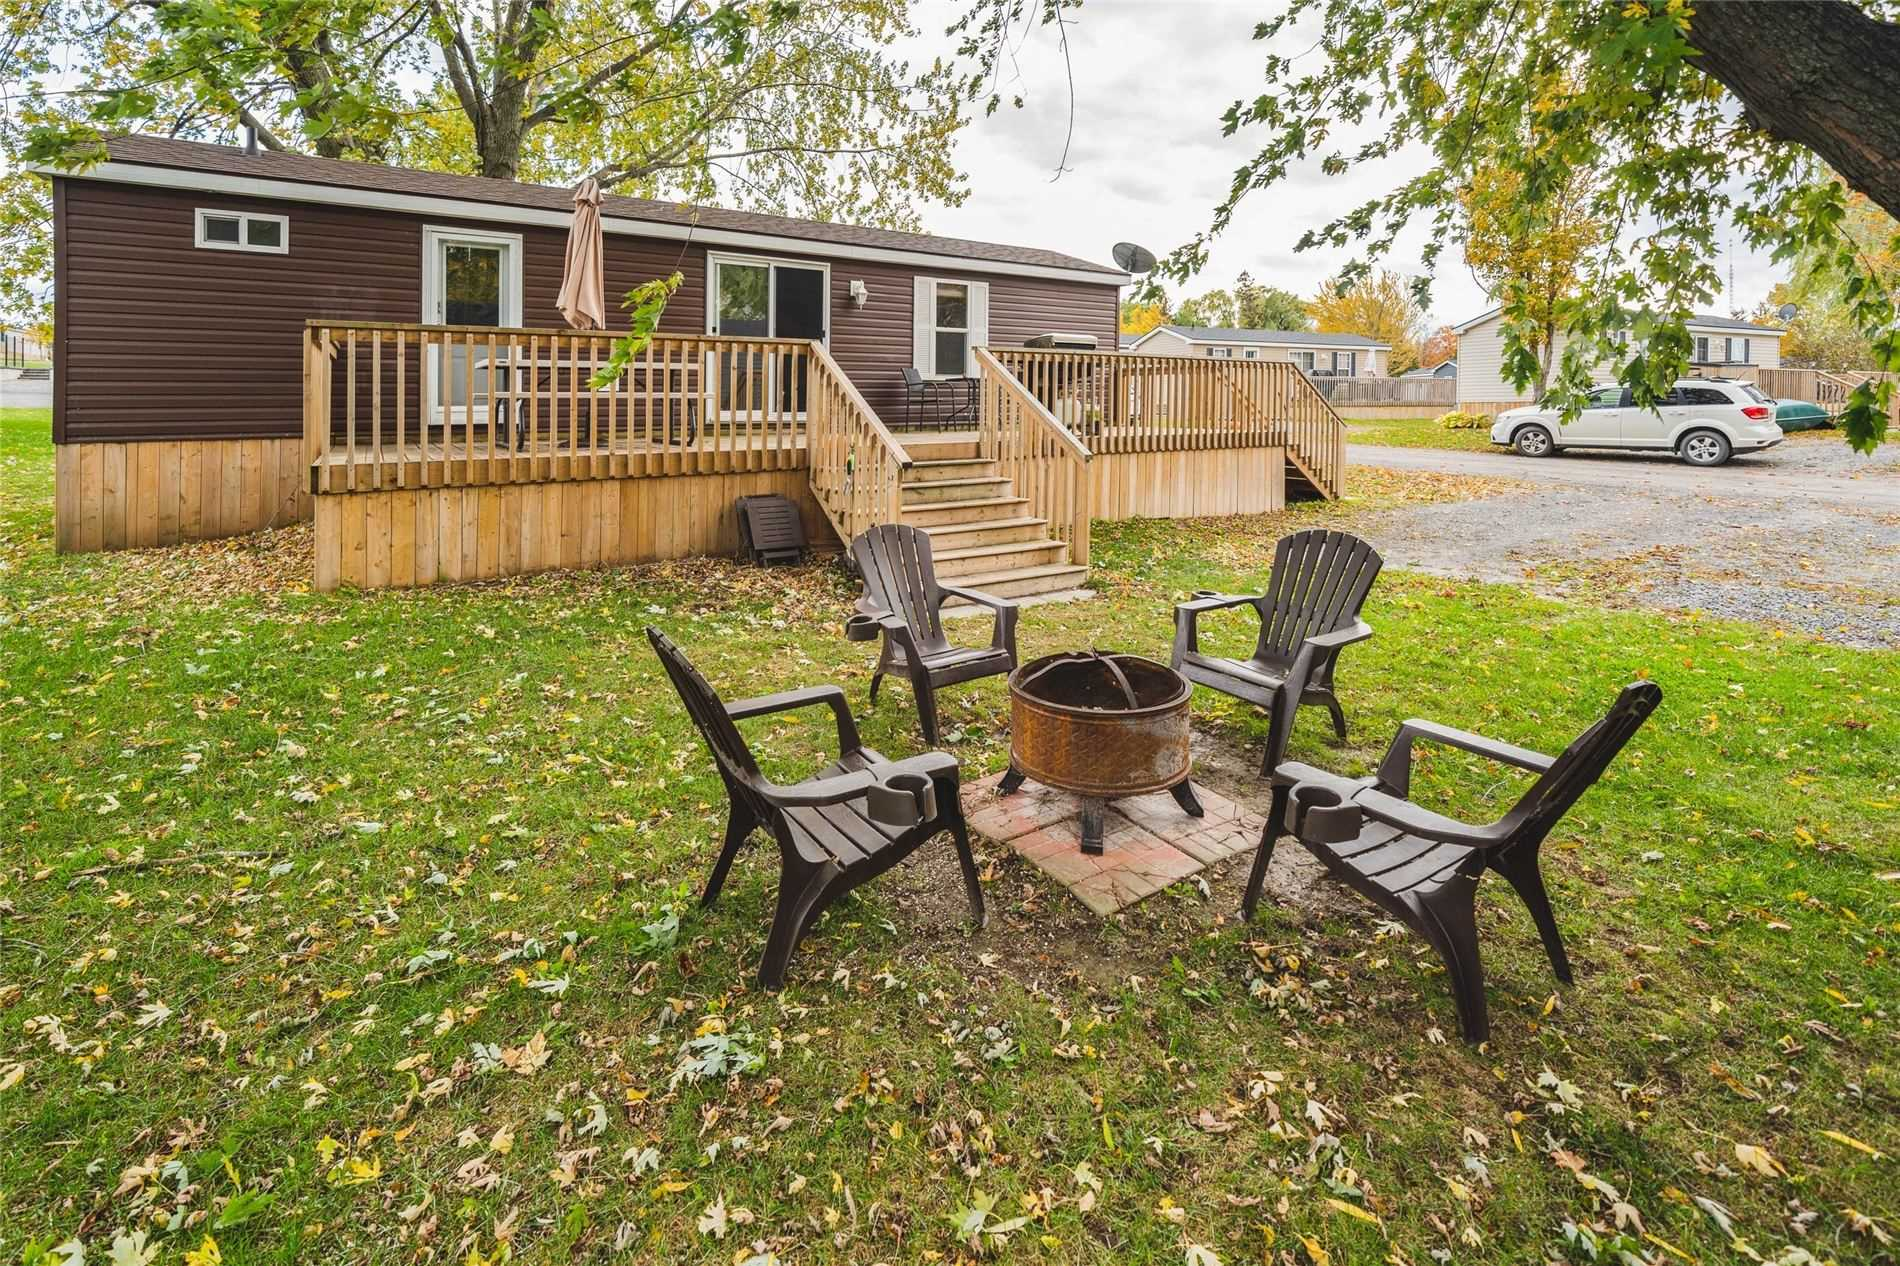 pictures of house for sale MLS: X4774381 located at 486 County Rd 18 Rd, Prince Edward County K0K1P0